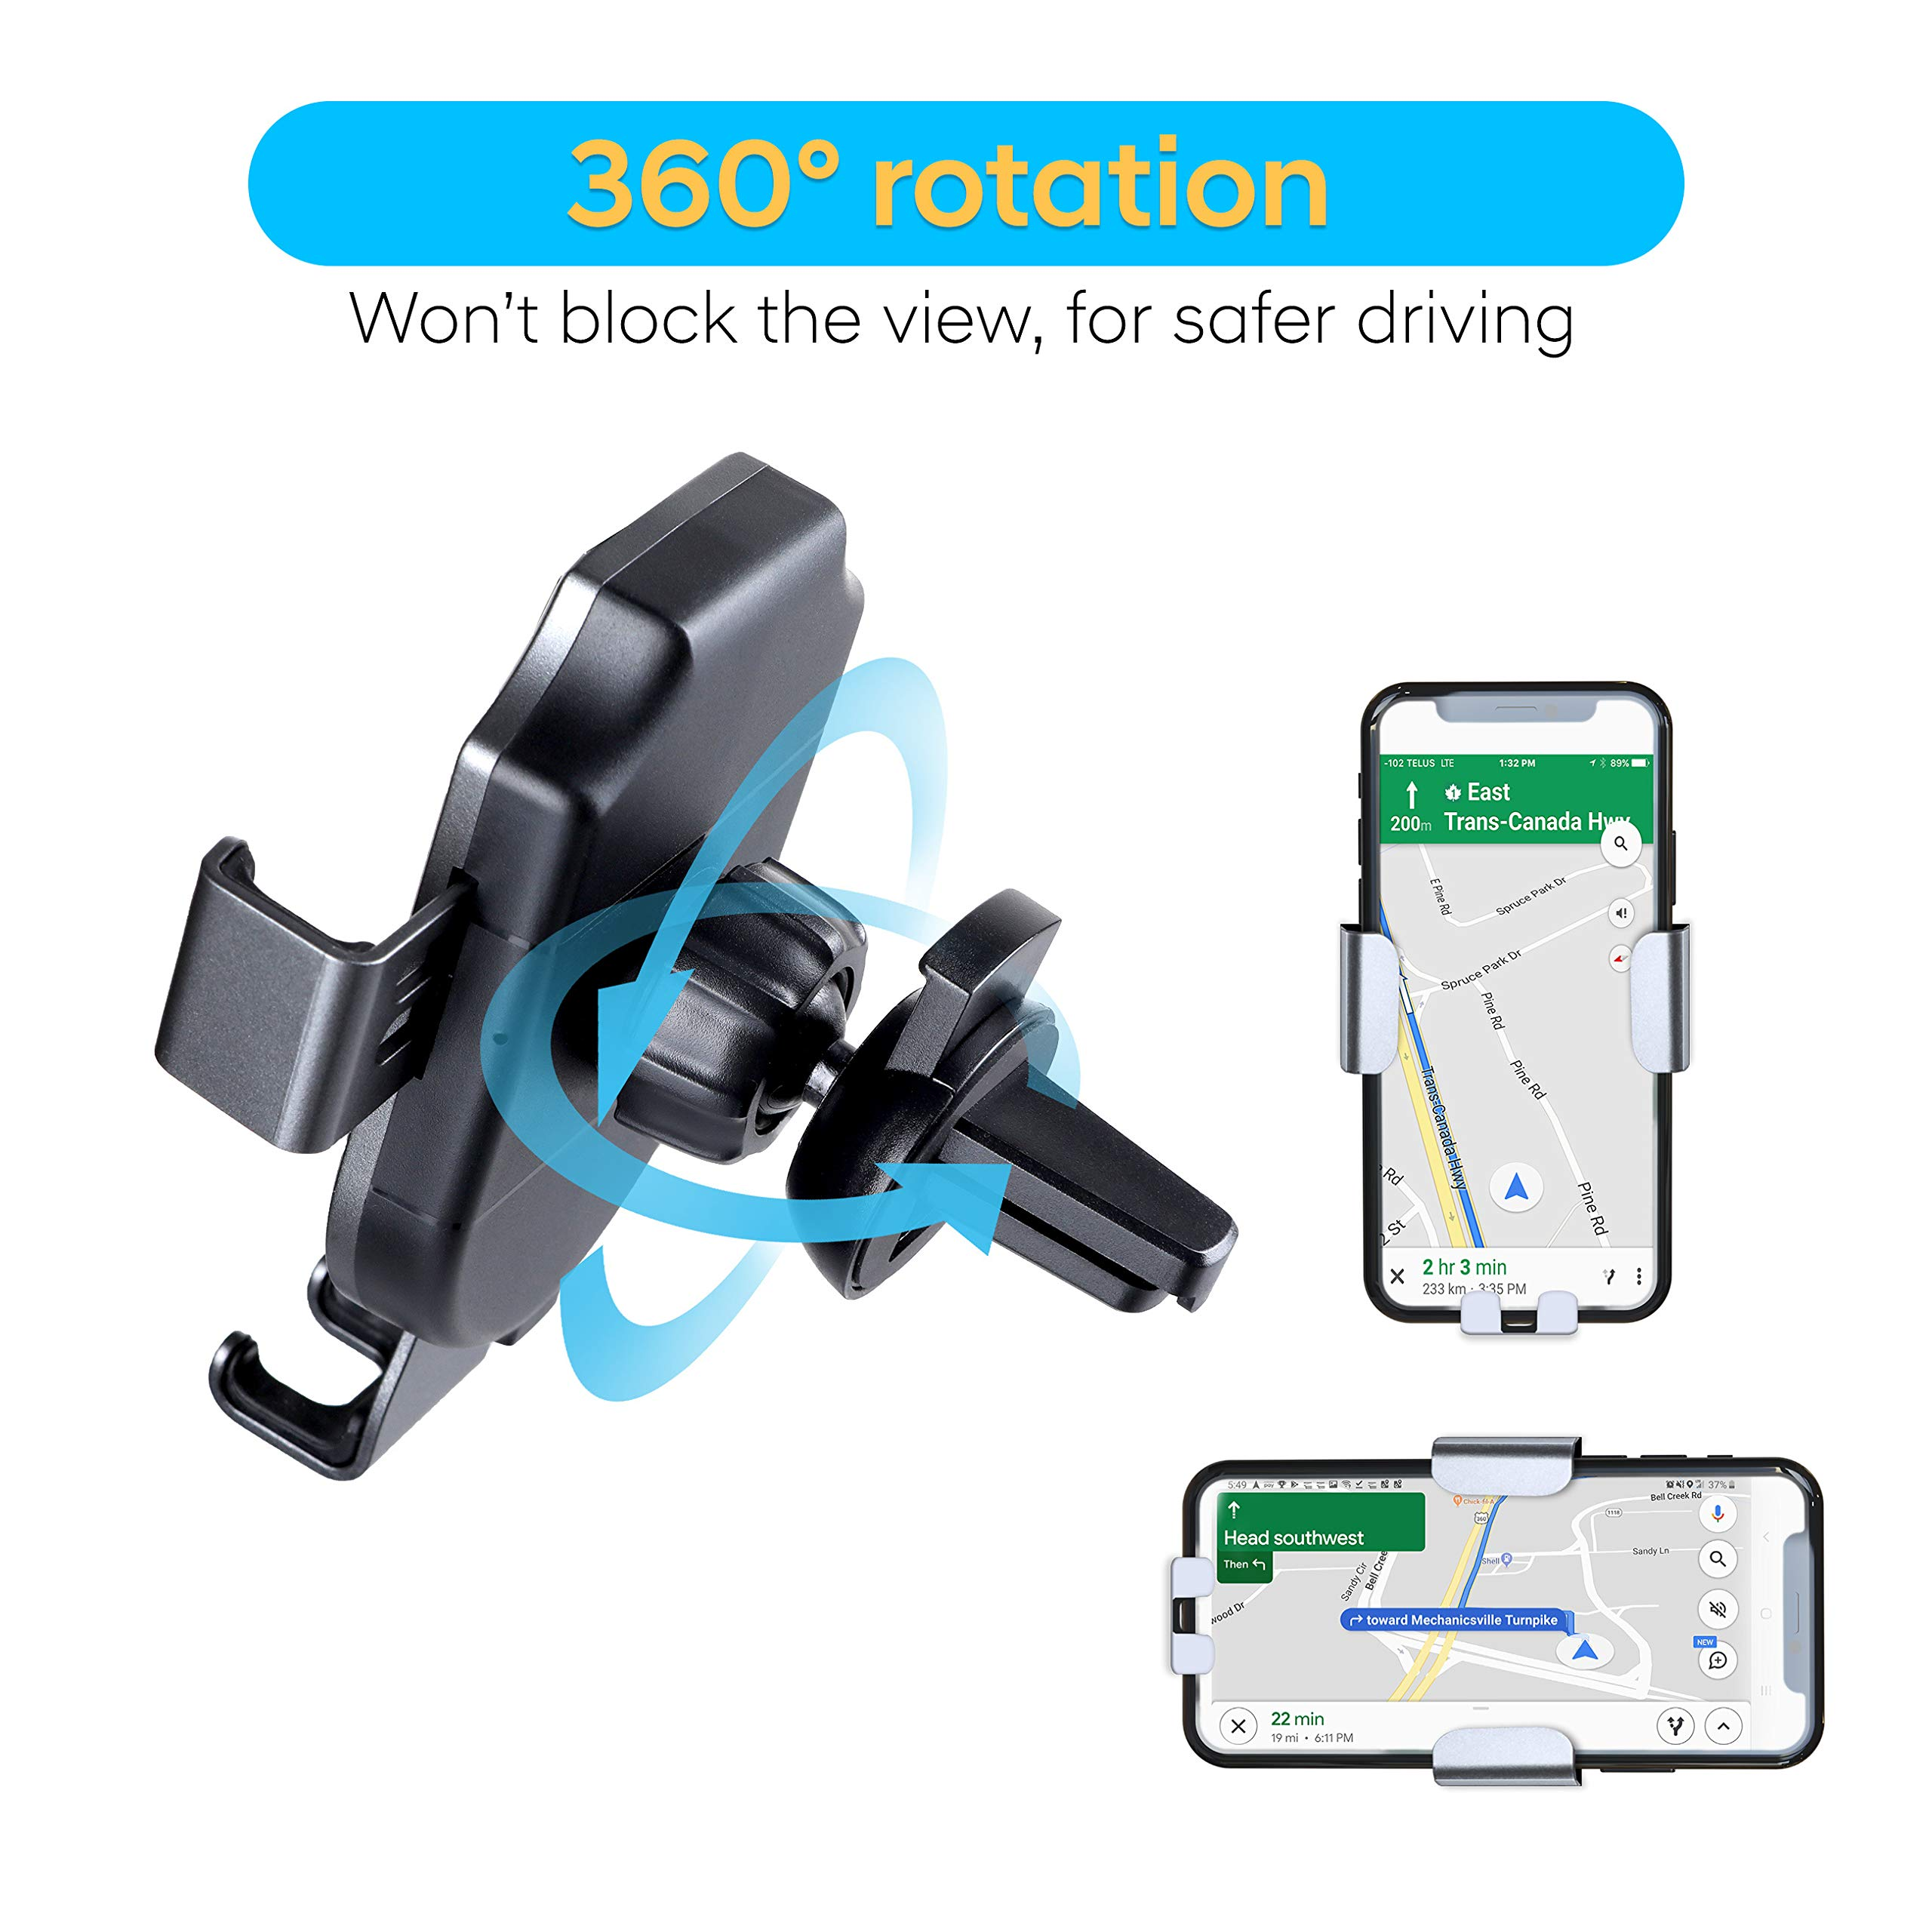 Auto Clamping Air Vent Charging Phone Mount of Car Teekva Gravity Wireless Charging Car Mount Delivers Lightning-Fast 10W 7.5W Charging for Most iPhone Samsung LG Nokia Xiaomi Google Nexus Models